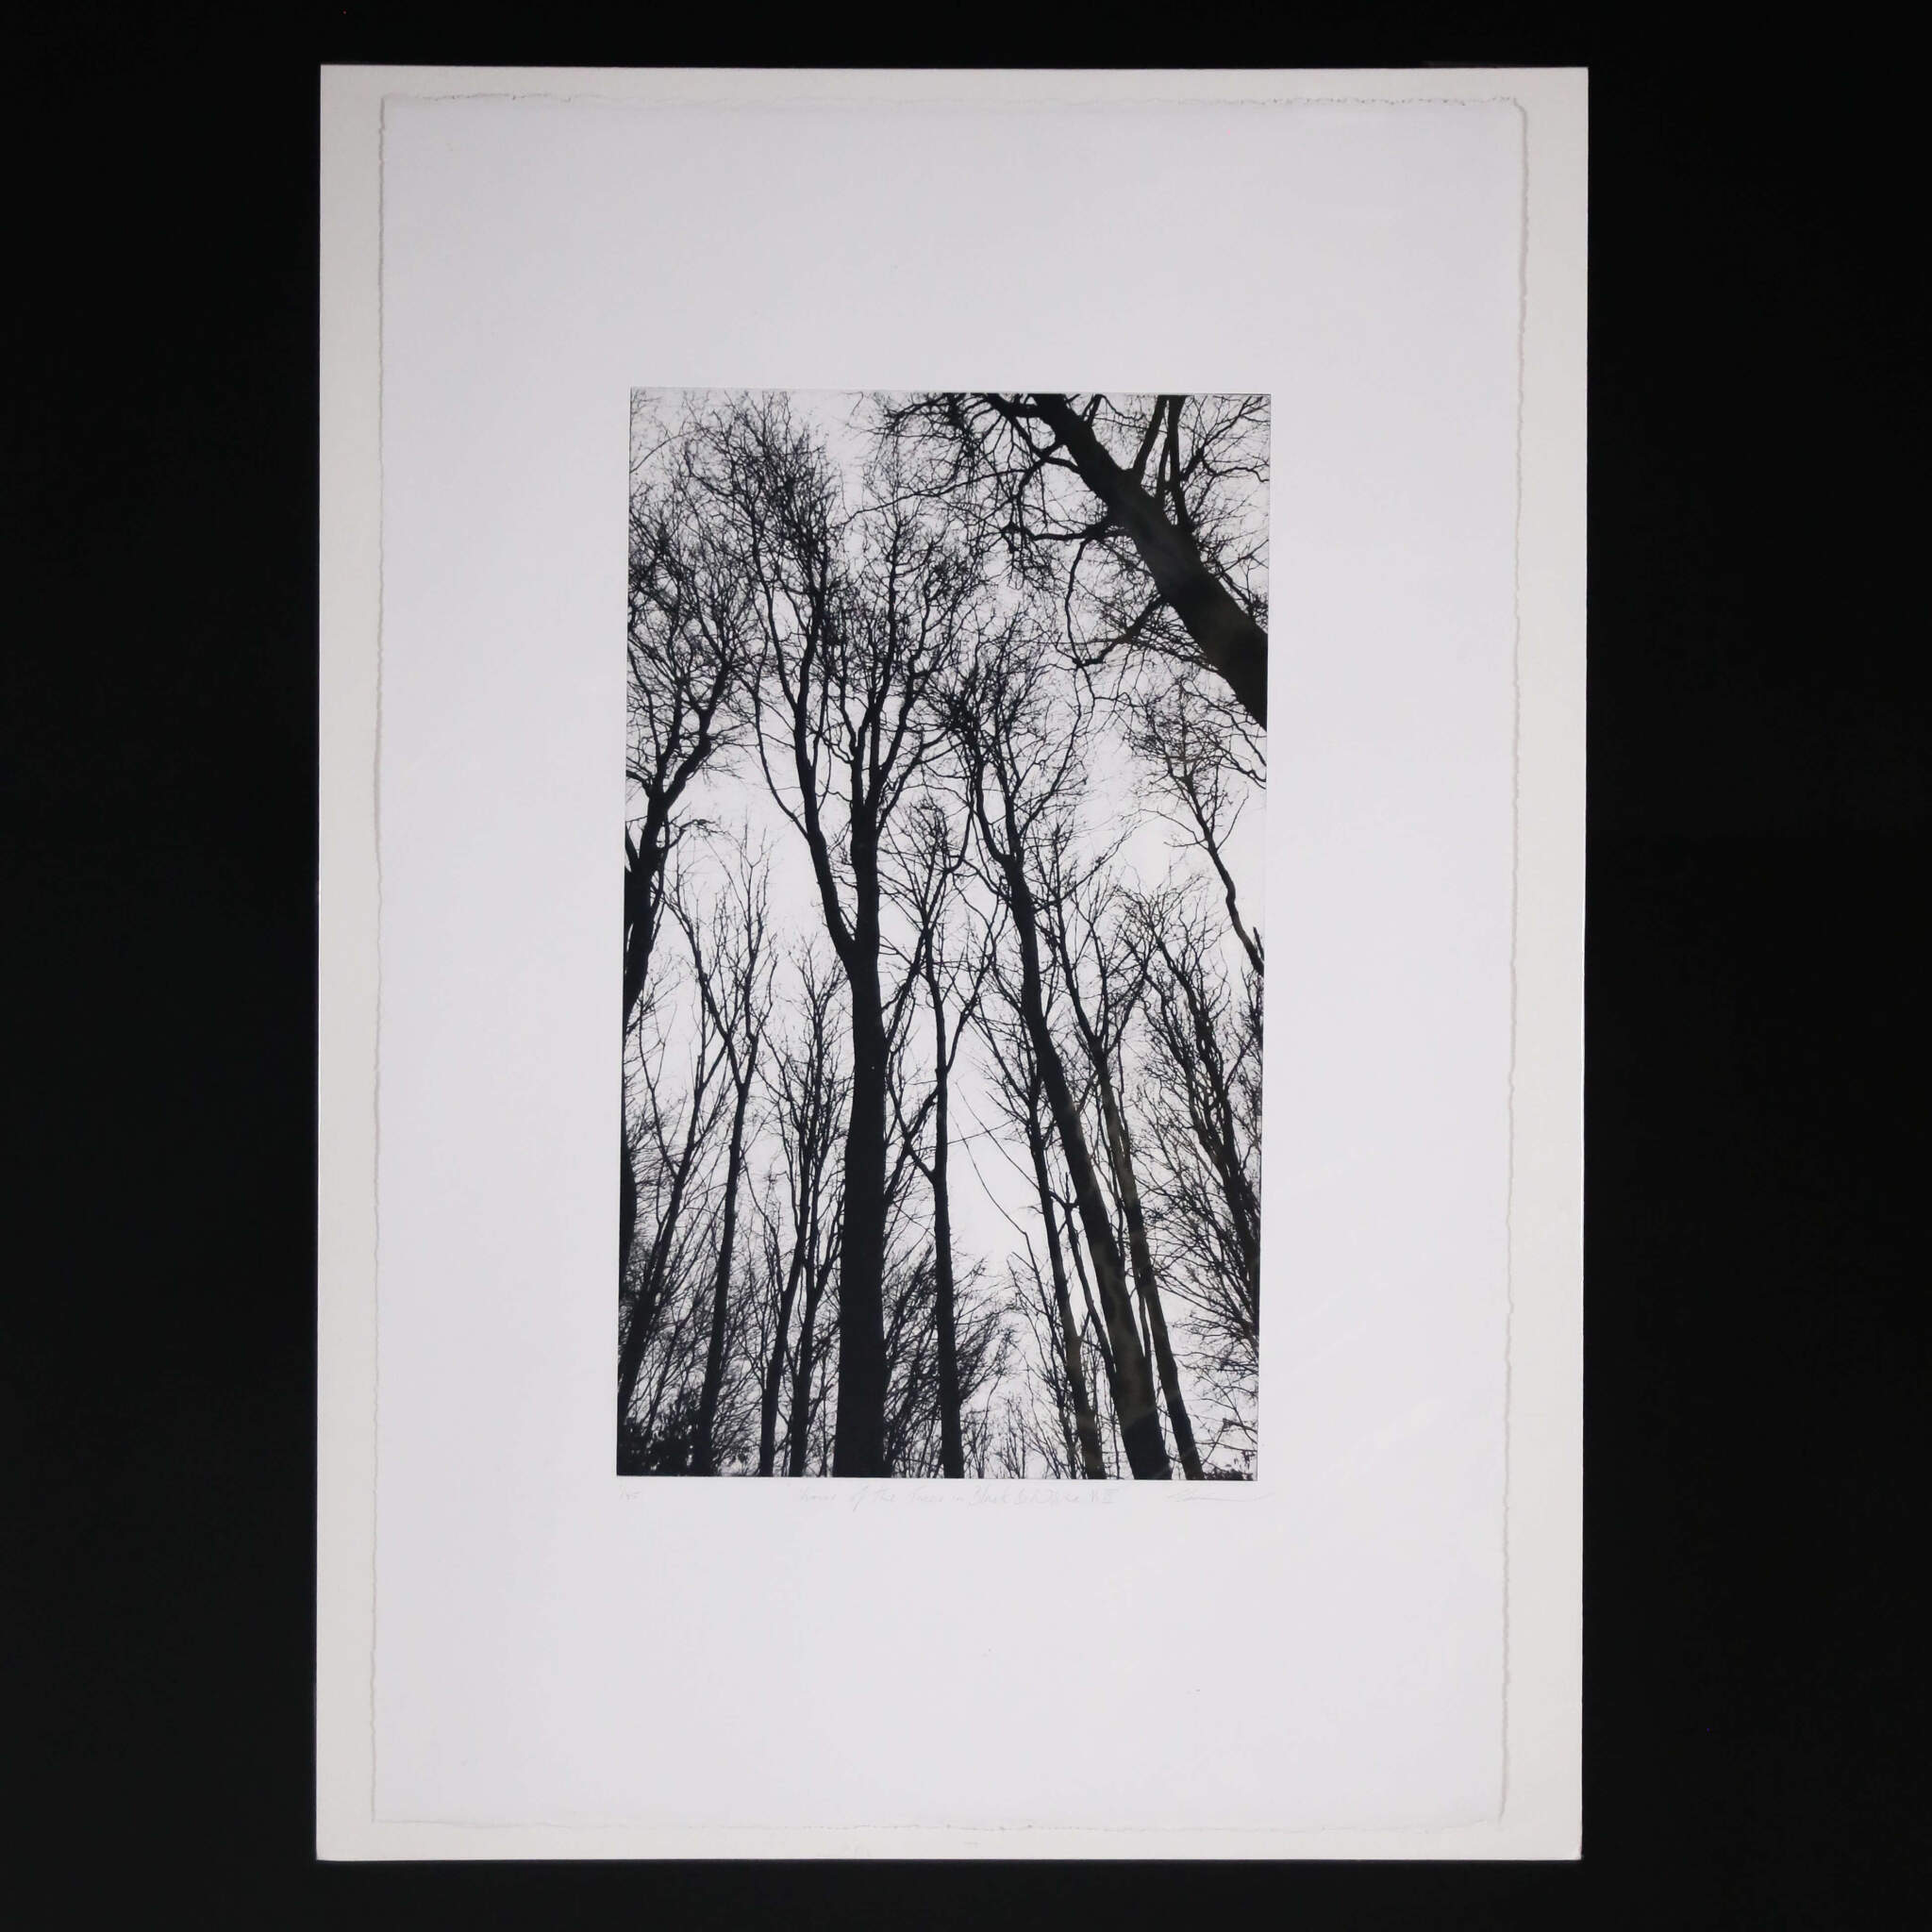 N58A3005 - Chorus of the Trees in Black and White III by Clare Grossman